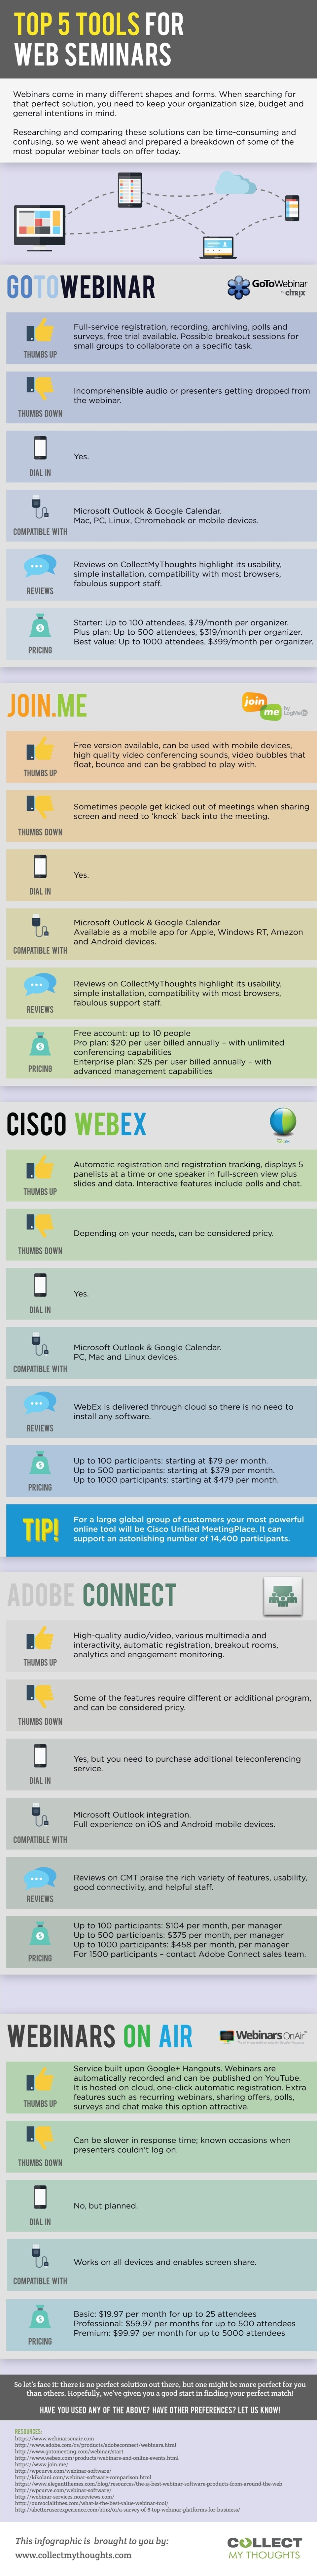 Top 5 Tools for Webinars Infographic - e-Learning Infographics